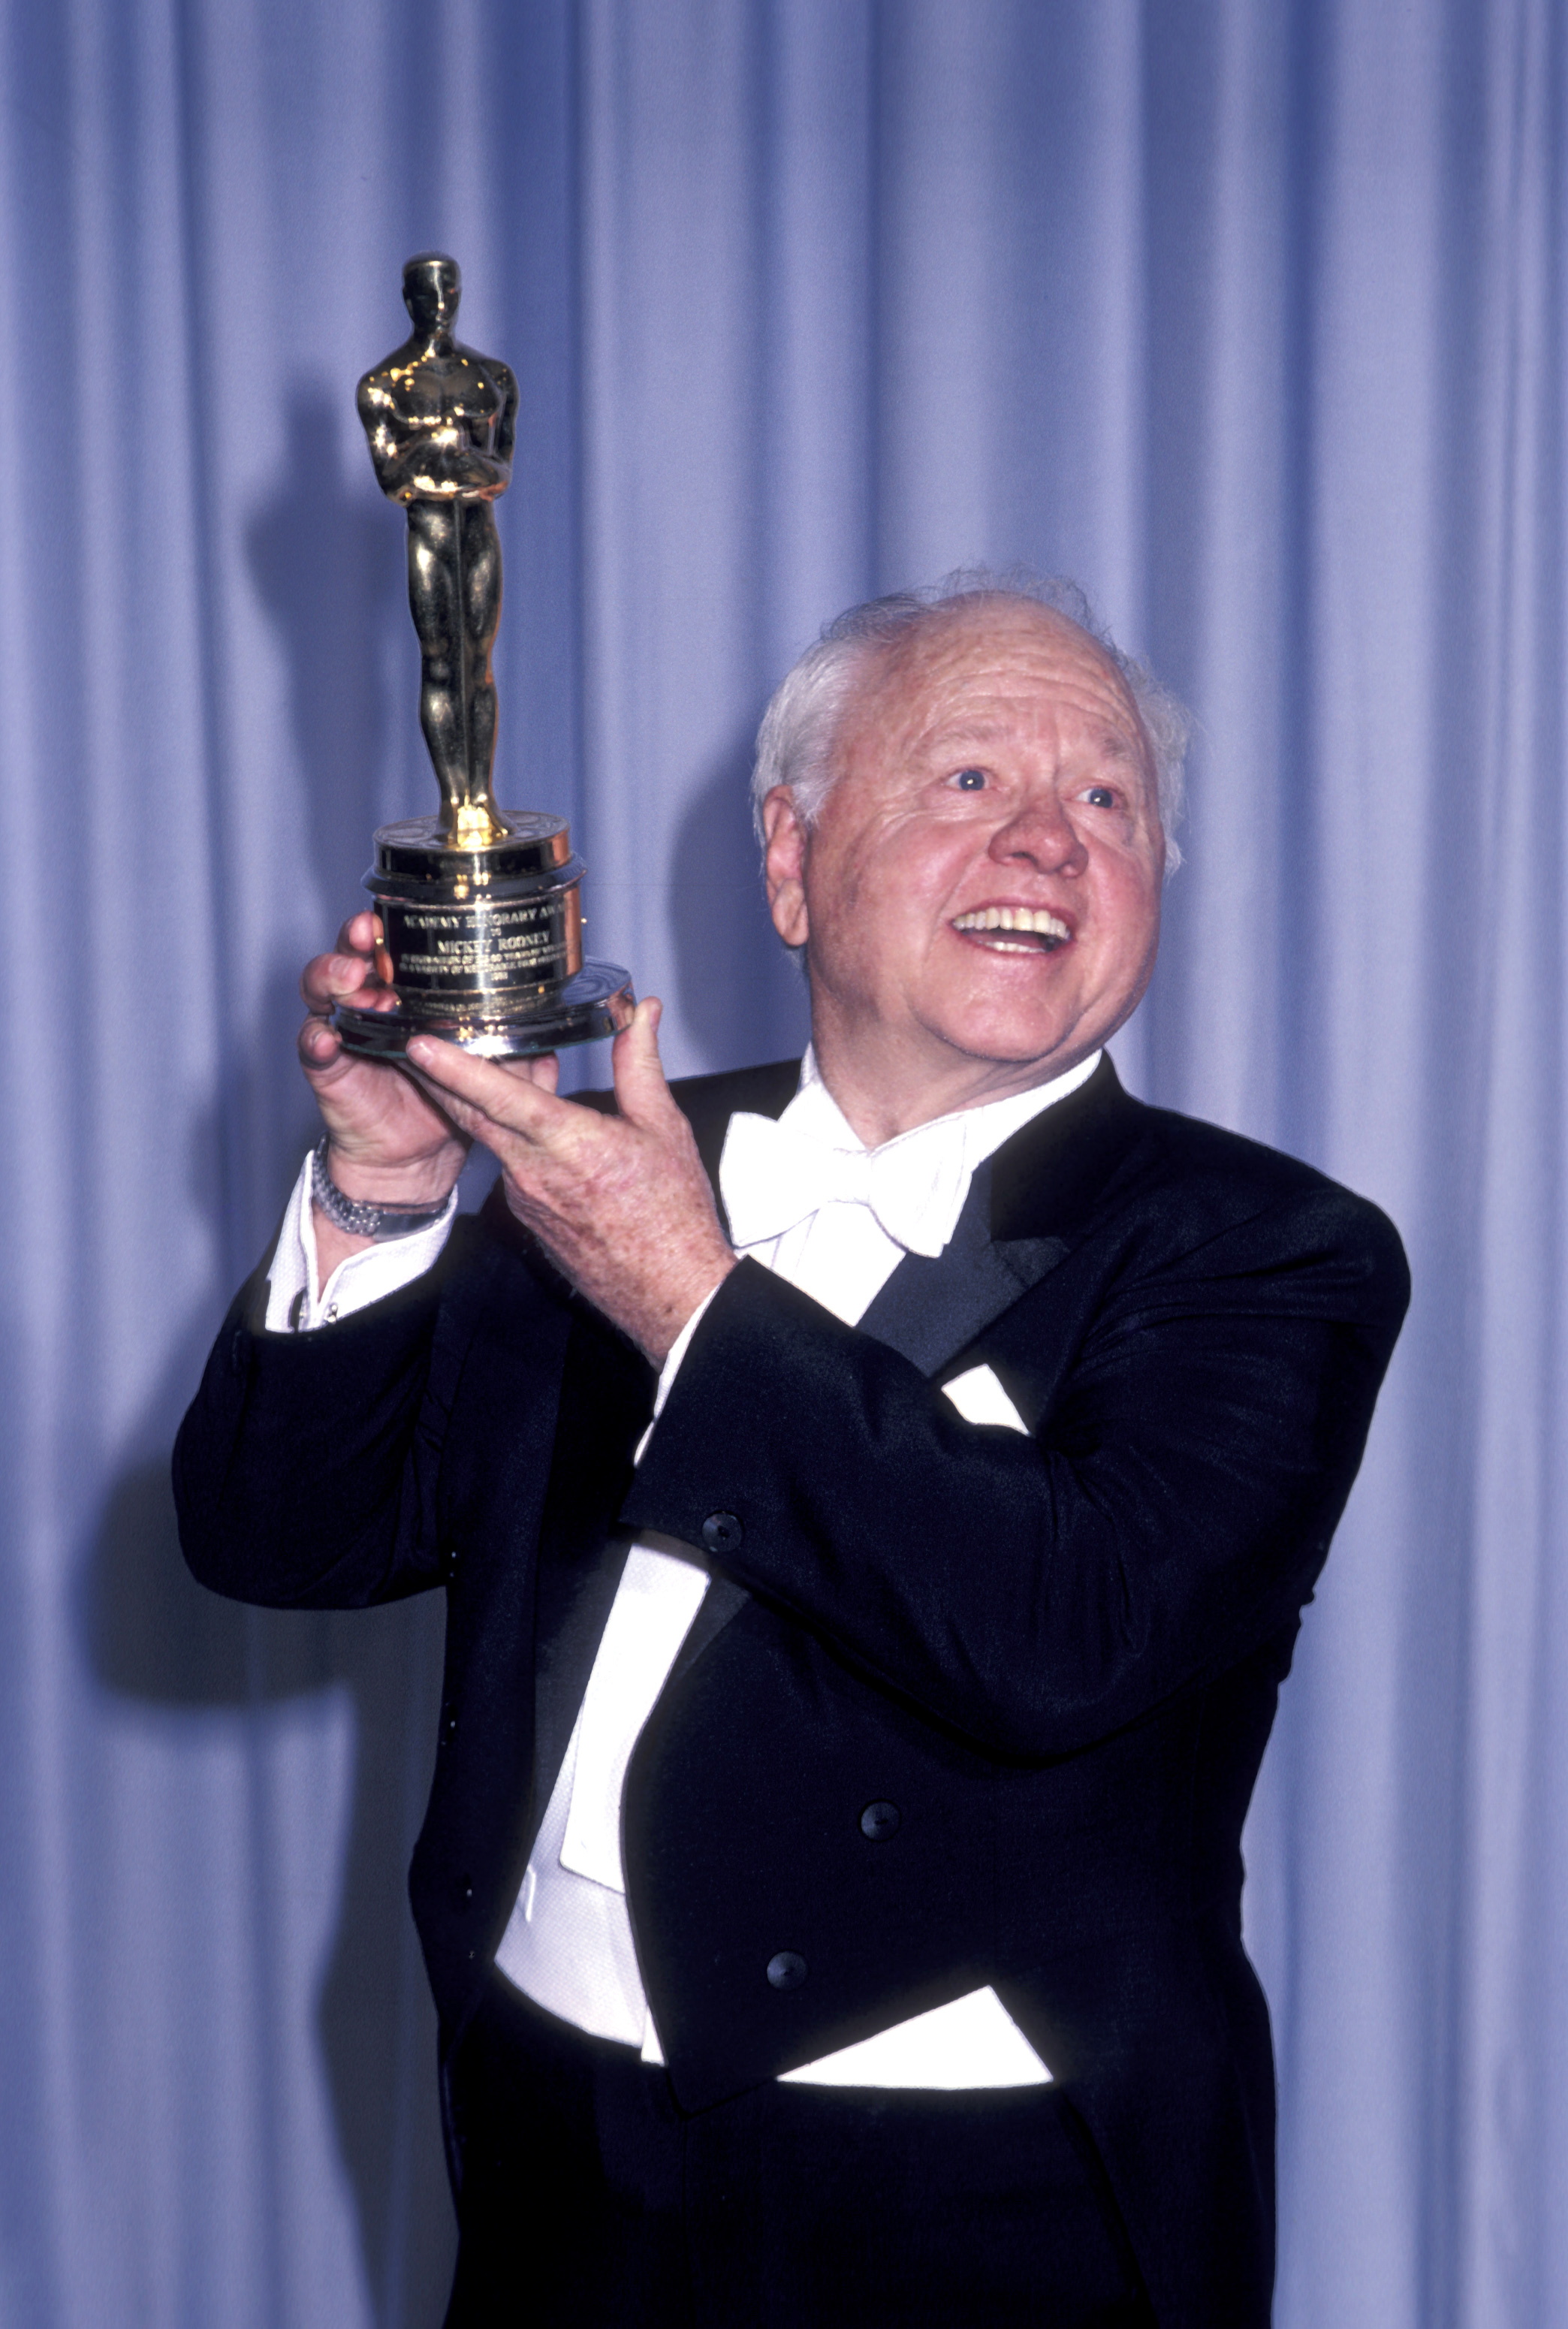 """Mickey Rooney received an Honorary Oscar in 1983 """"in recognition of his 50 years of versatility in a variety of memorable film performances."""""""